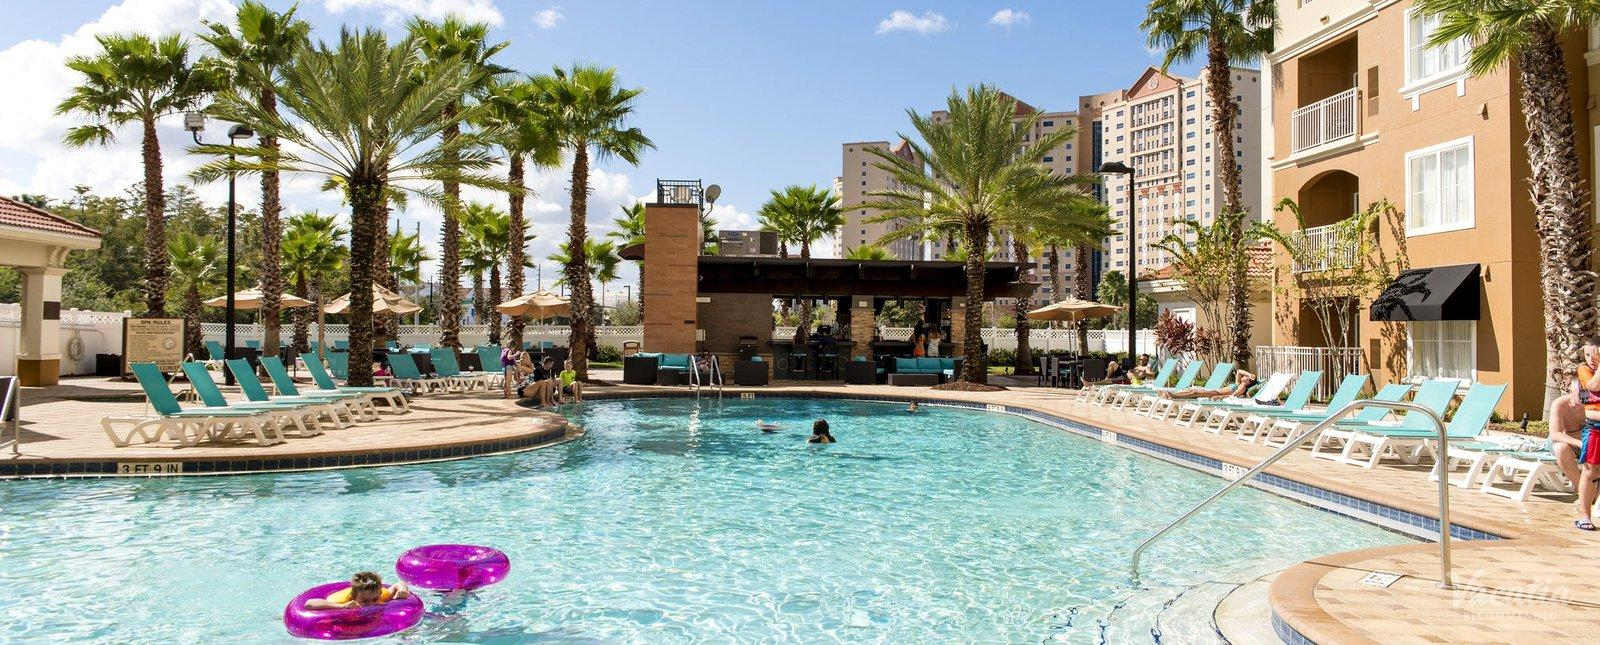 The Point Orlando Resort Pool